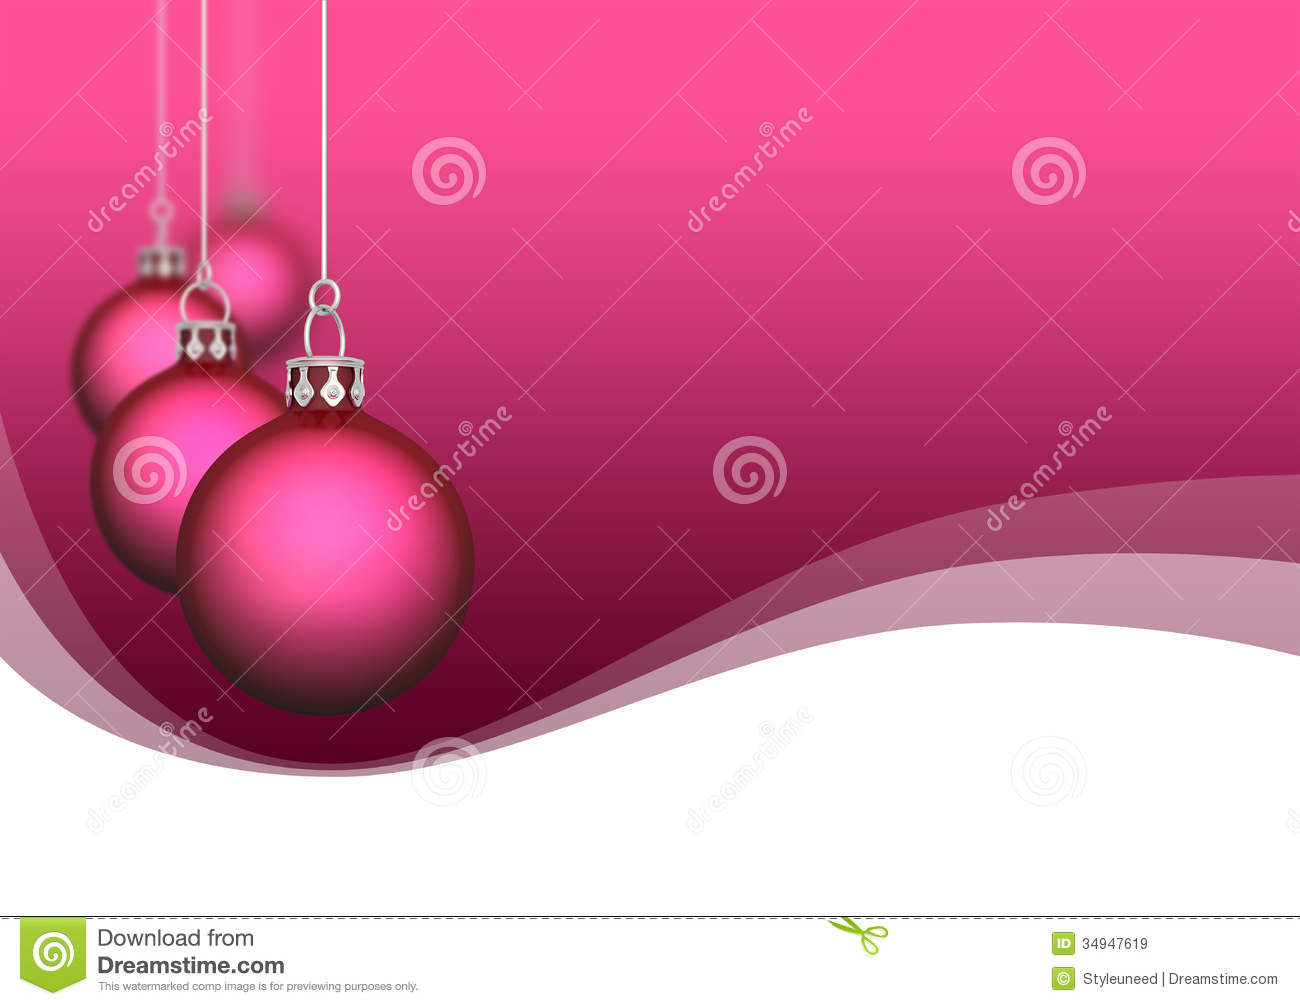 Royaltyfree Stock Photo Download Pink Satin Christmas Ornaments